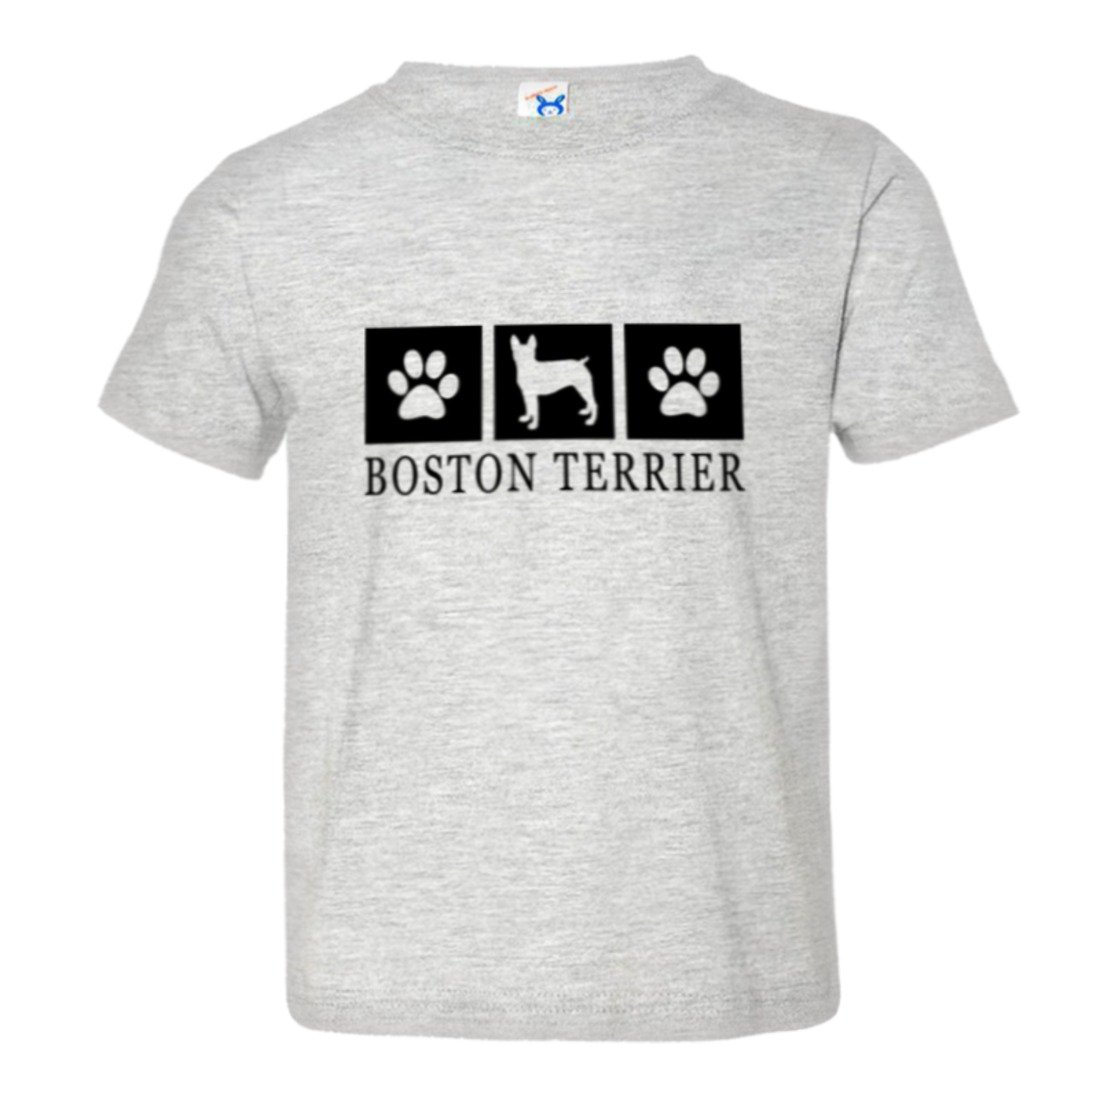 Toddler Boston Terrier Paws I Love My Dog Cat Lover HQ Tee Shirt